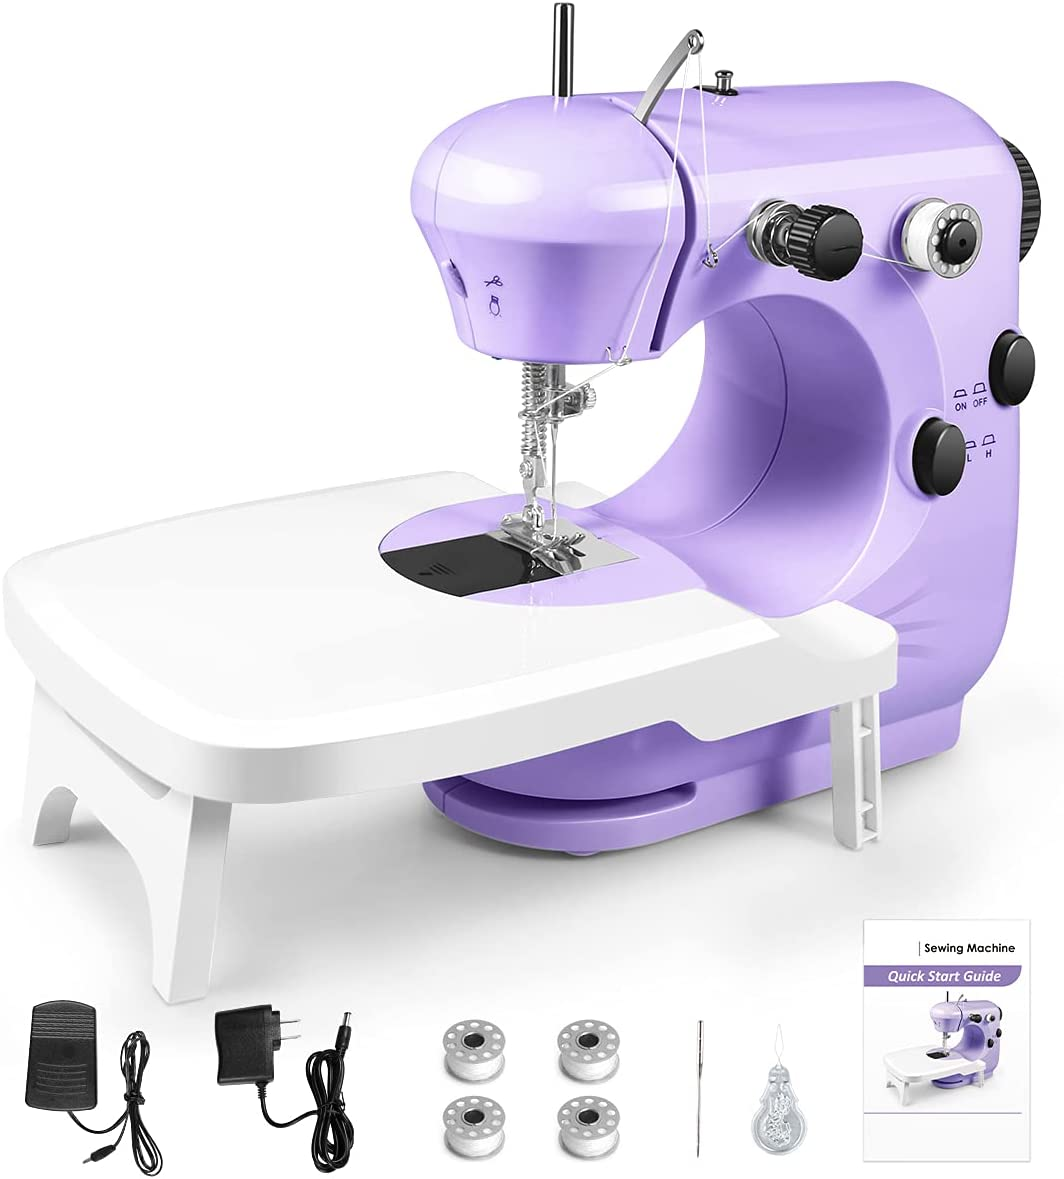 Sewing Machine Mini for 2-Speed Max 82% Branded goods OFF Beginners Porta